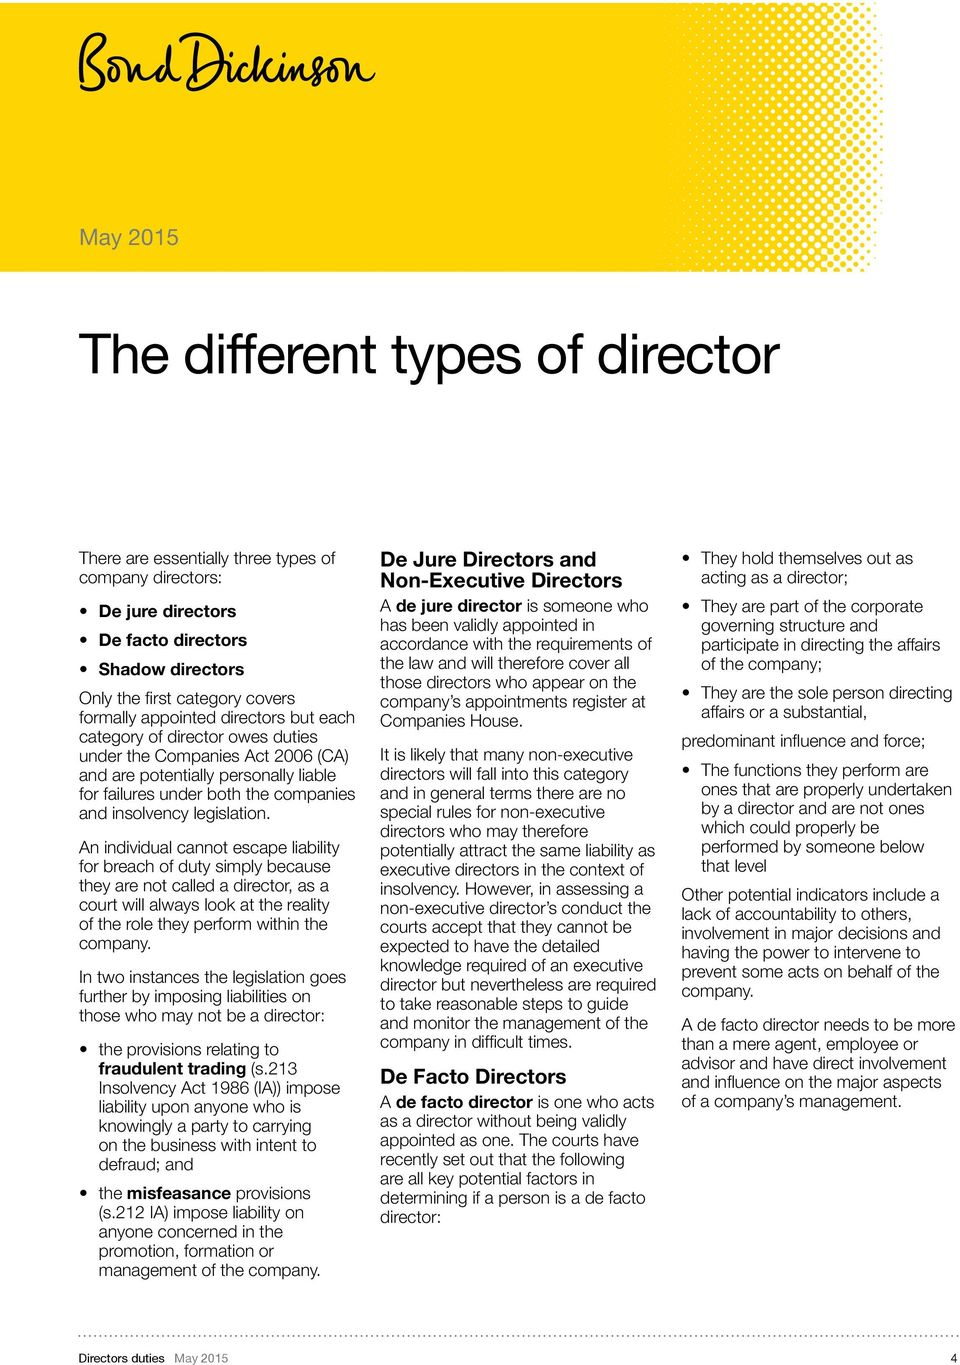 An individual cannot escape liability for breach of duty simply because they are not called a director, as a court will always look at the reality of the role they perform within the company.